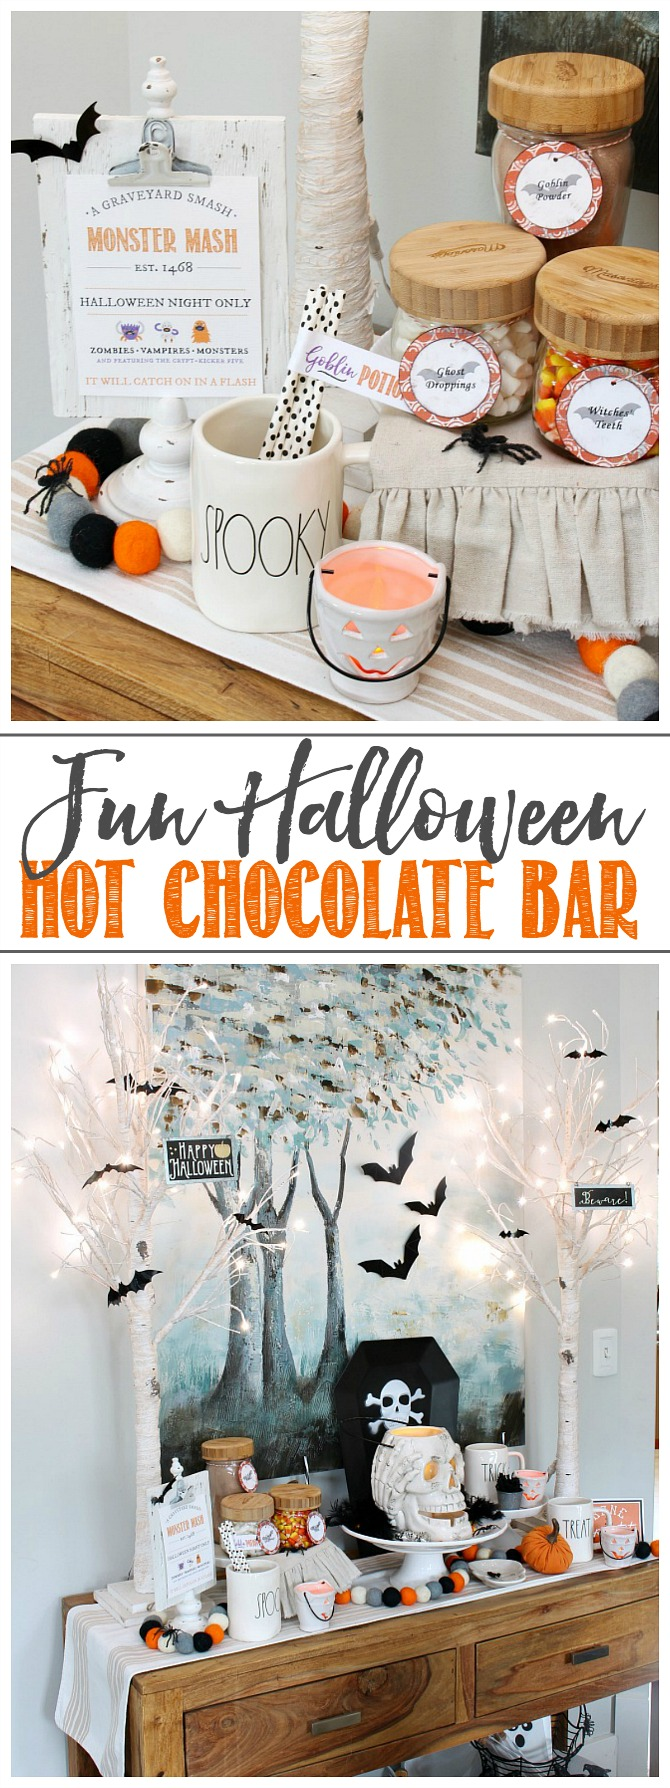 Halloween hot chocolate bar using free Halloween labels.